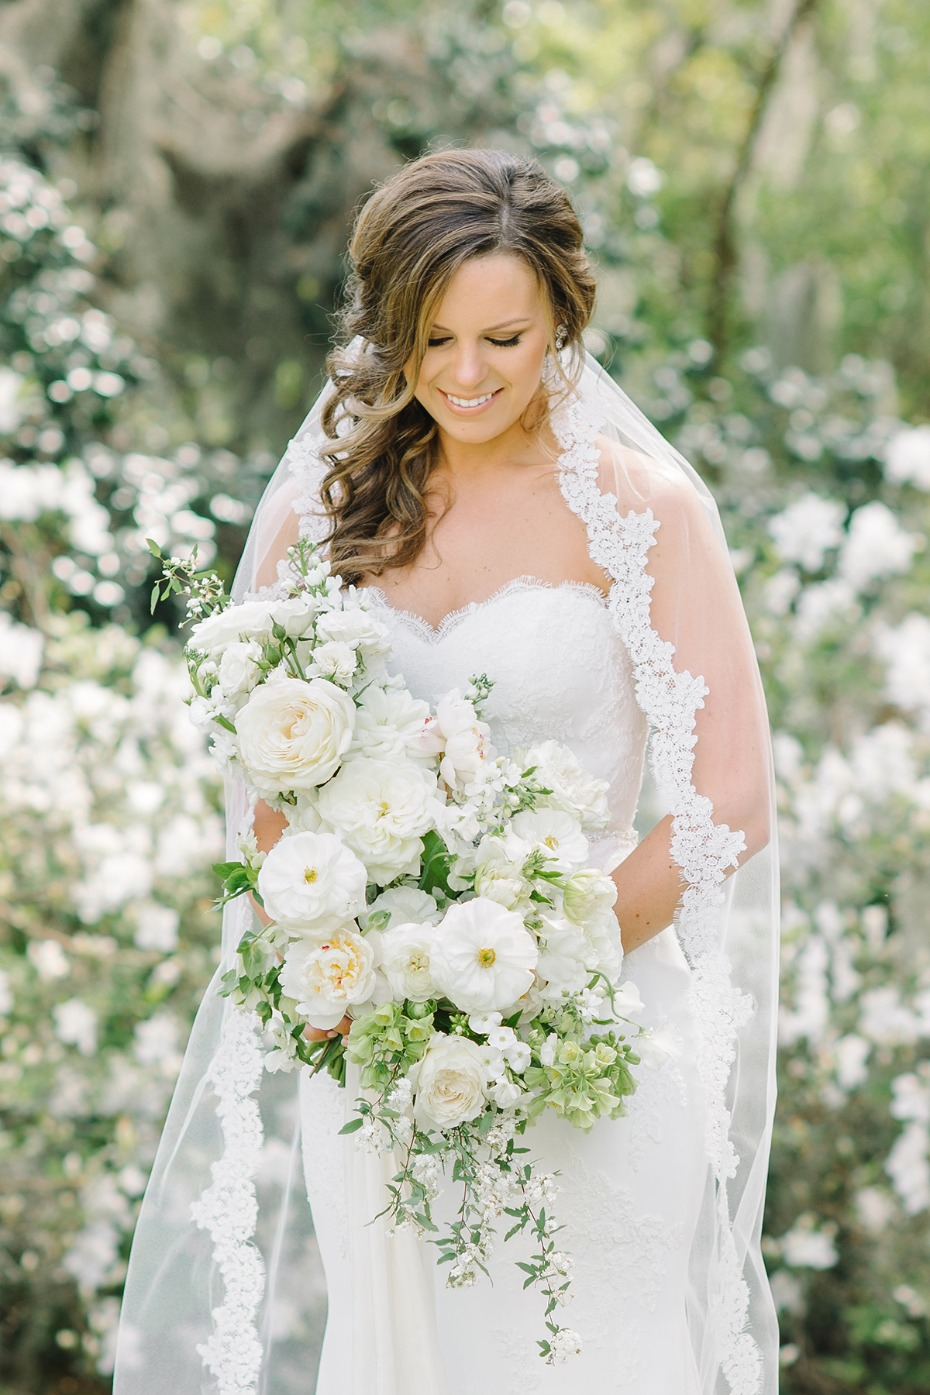 Asymmetrical white wedding bouquet